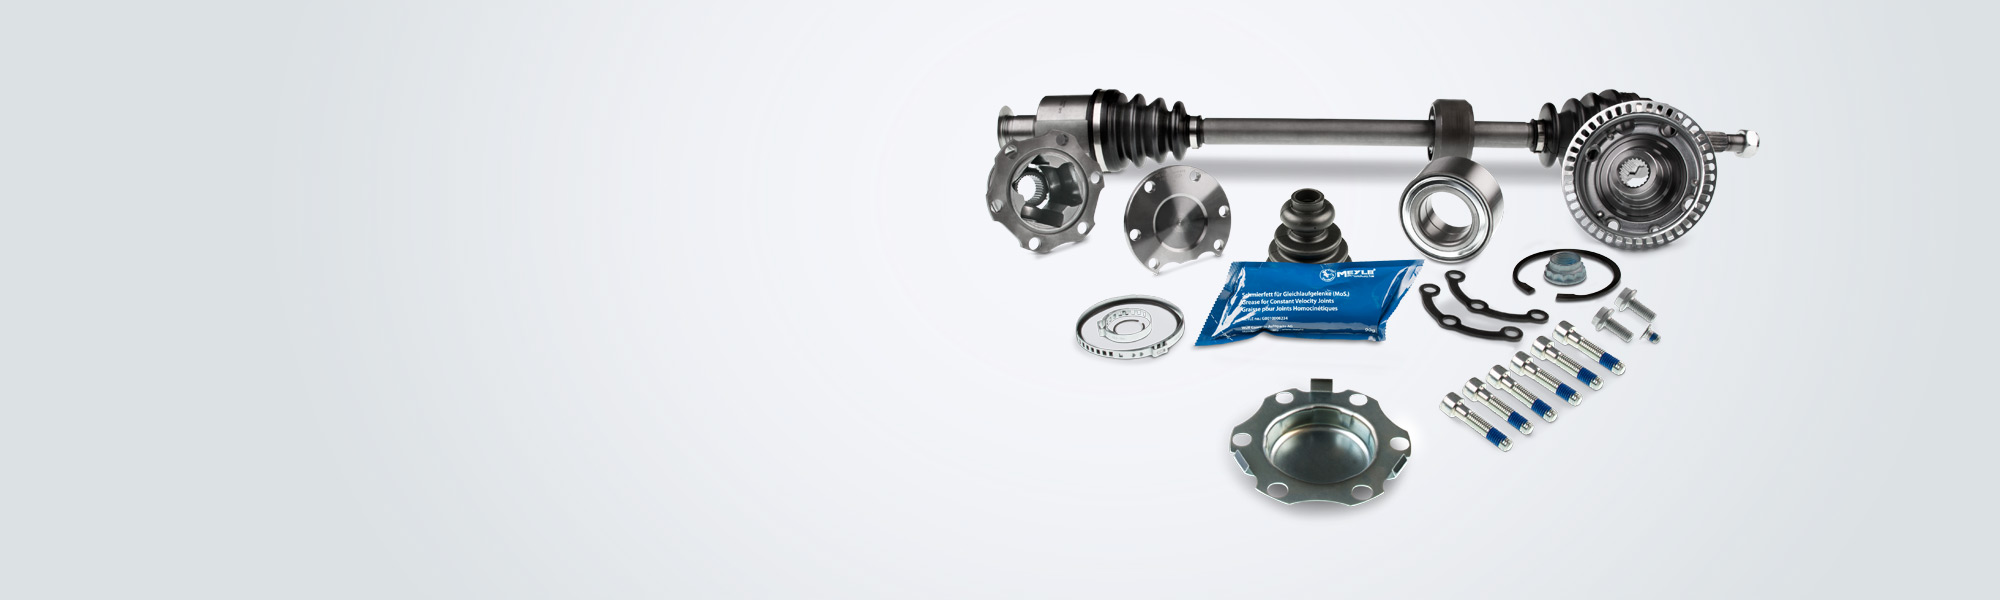 MEYLE drive components